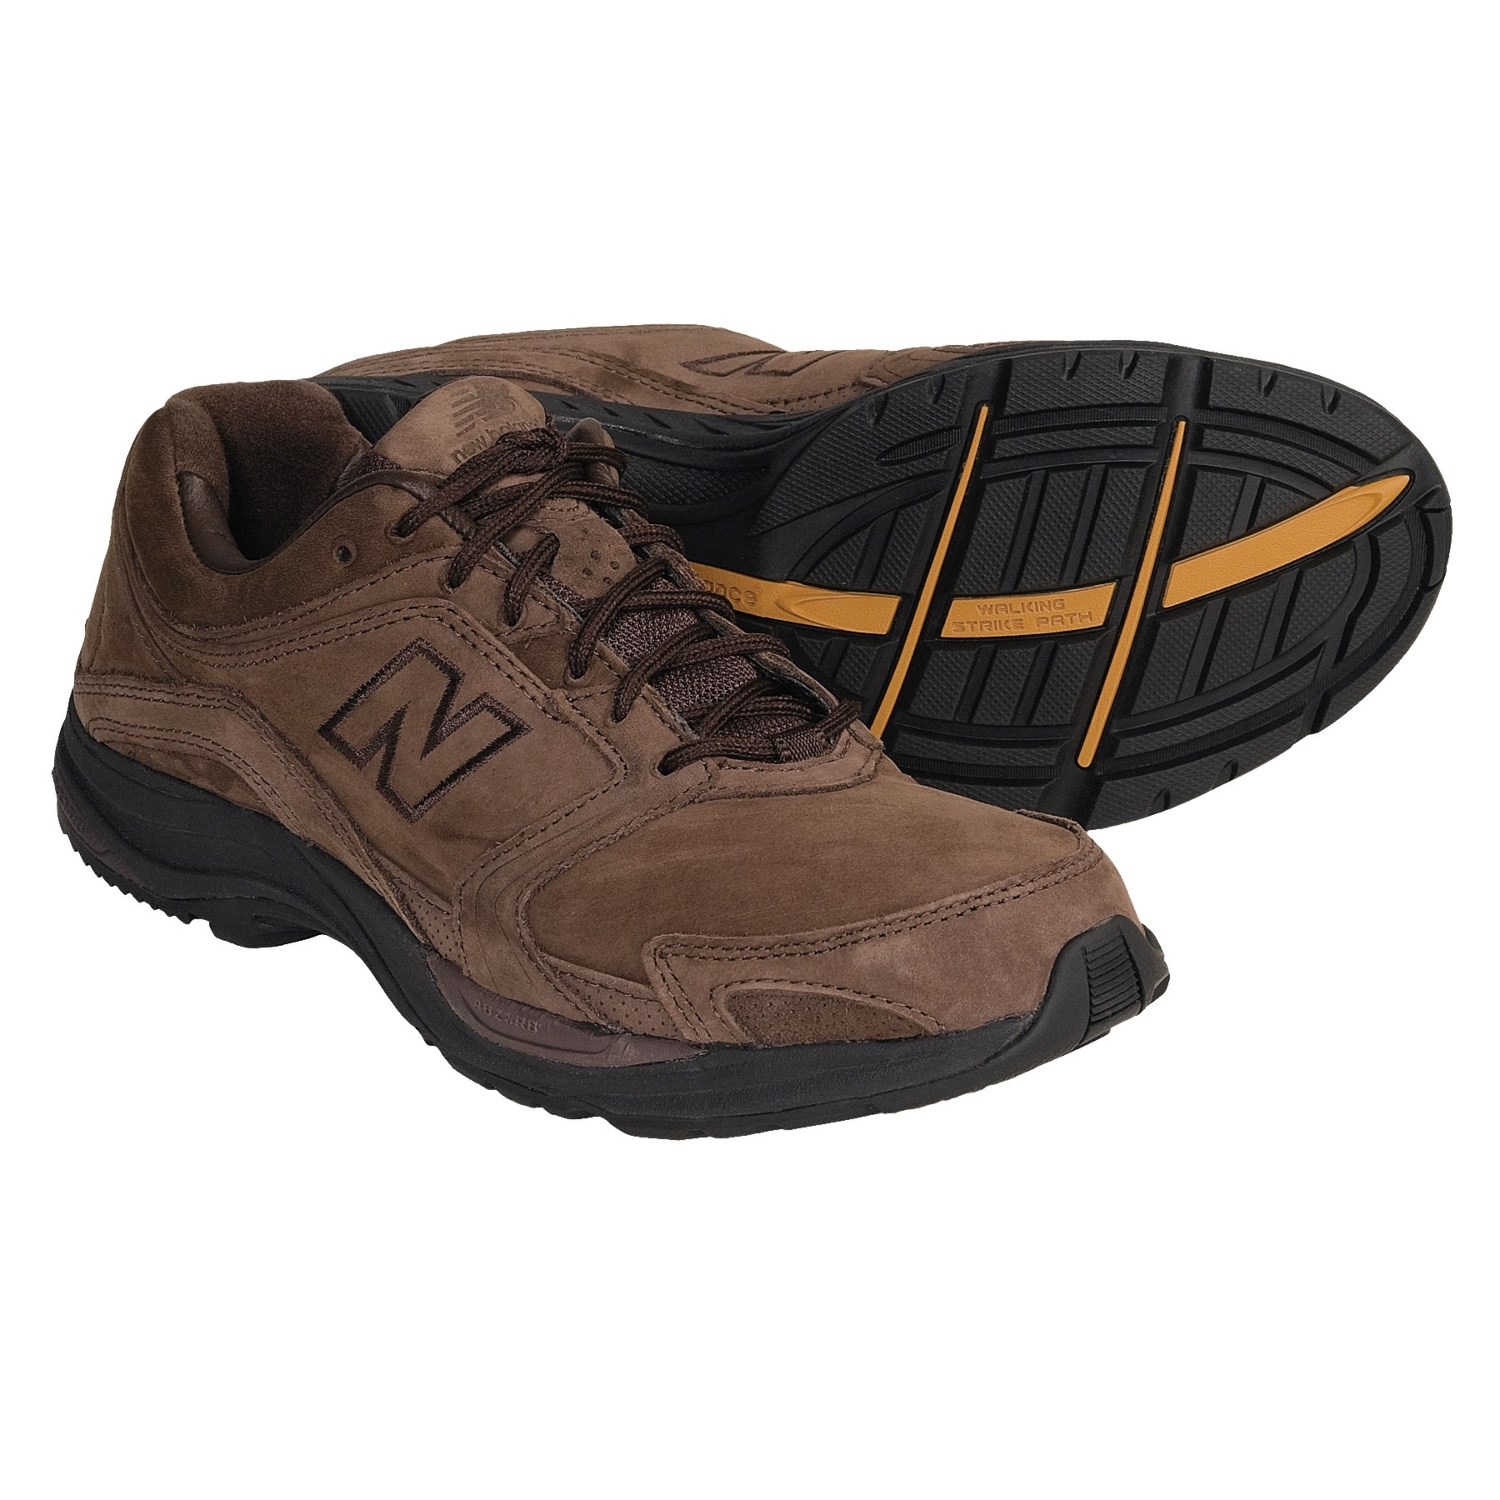 New Balance Crossfit Shoes Womens